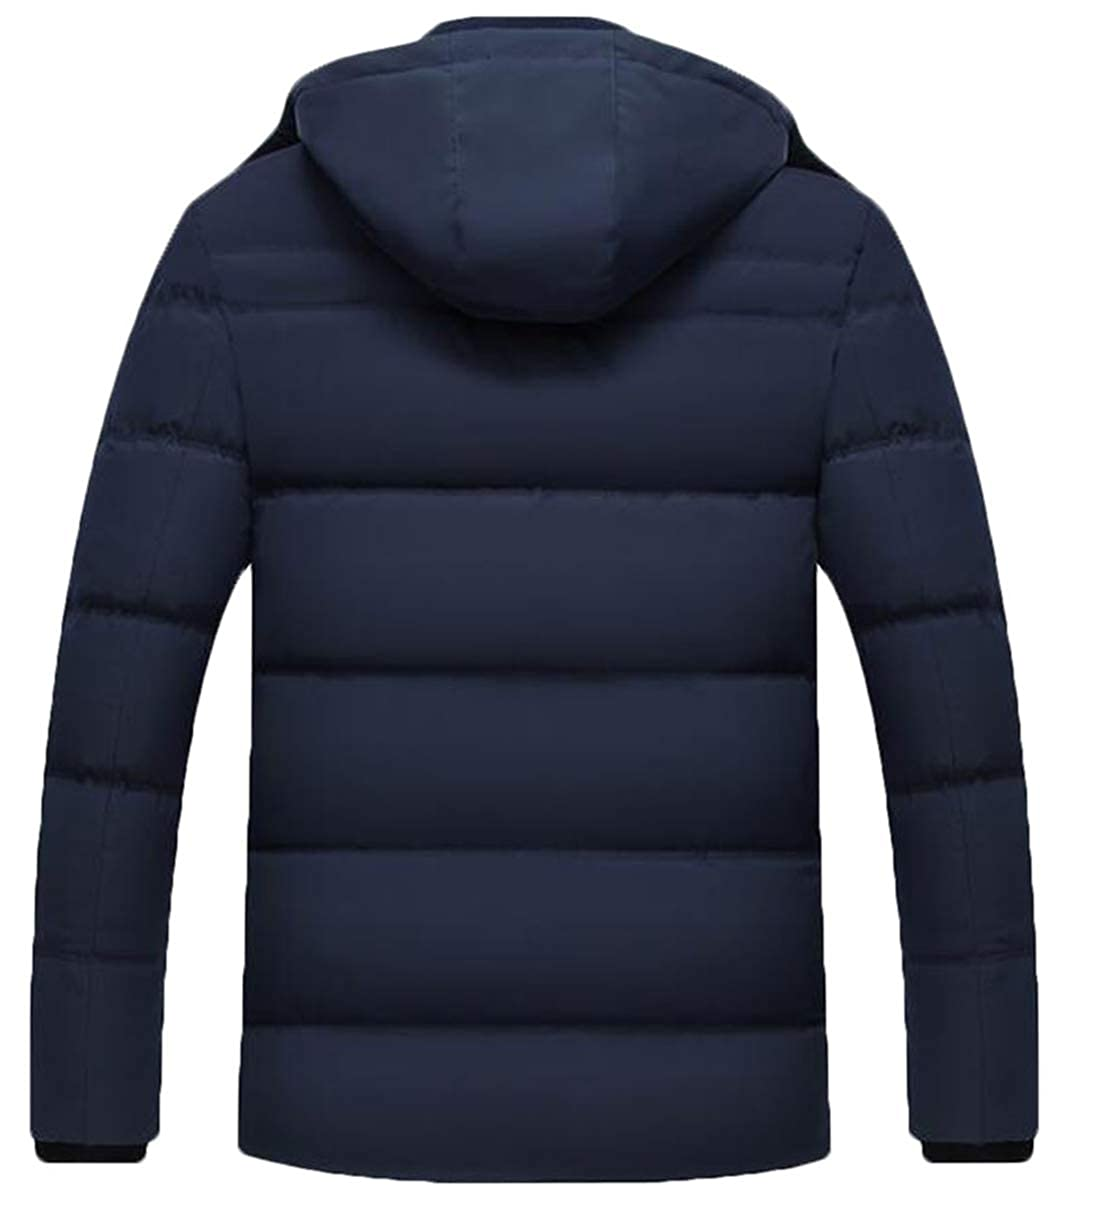 Twcx Mens Quilted Padded Winter Hooded Stand Collar Warm Zip-Up Puffer Coat Jacket